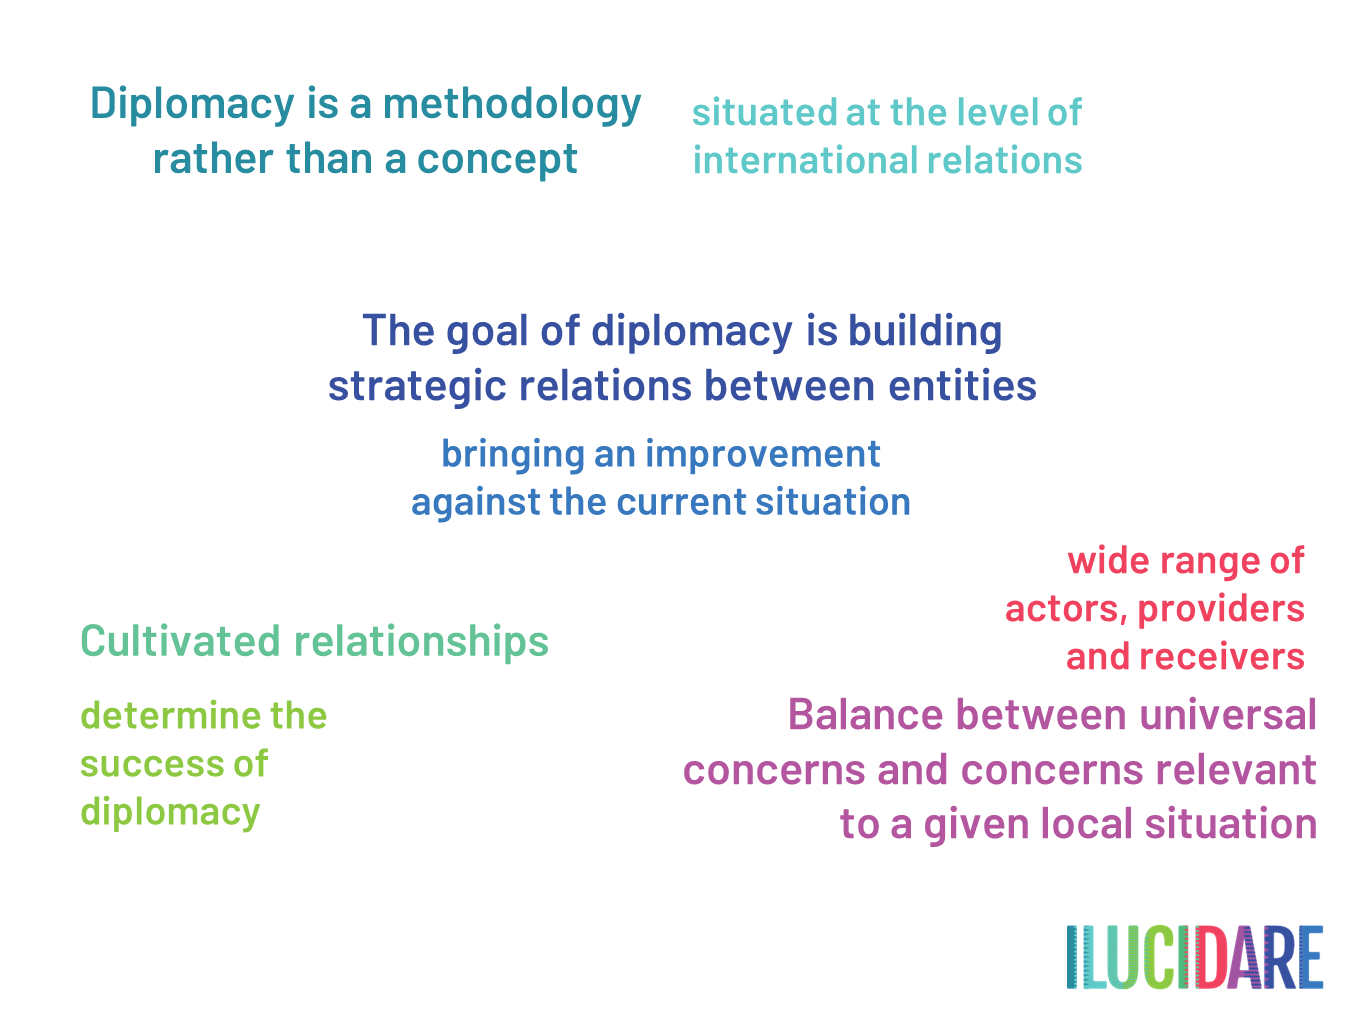 ILUCIDARE definition heritage-led diplomacy